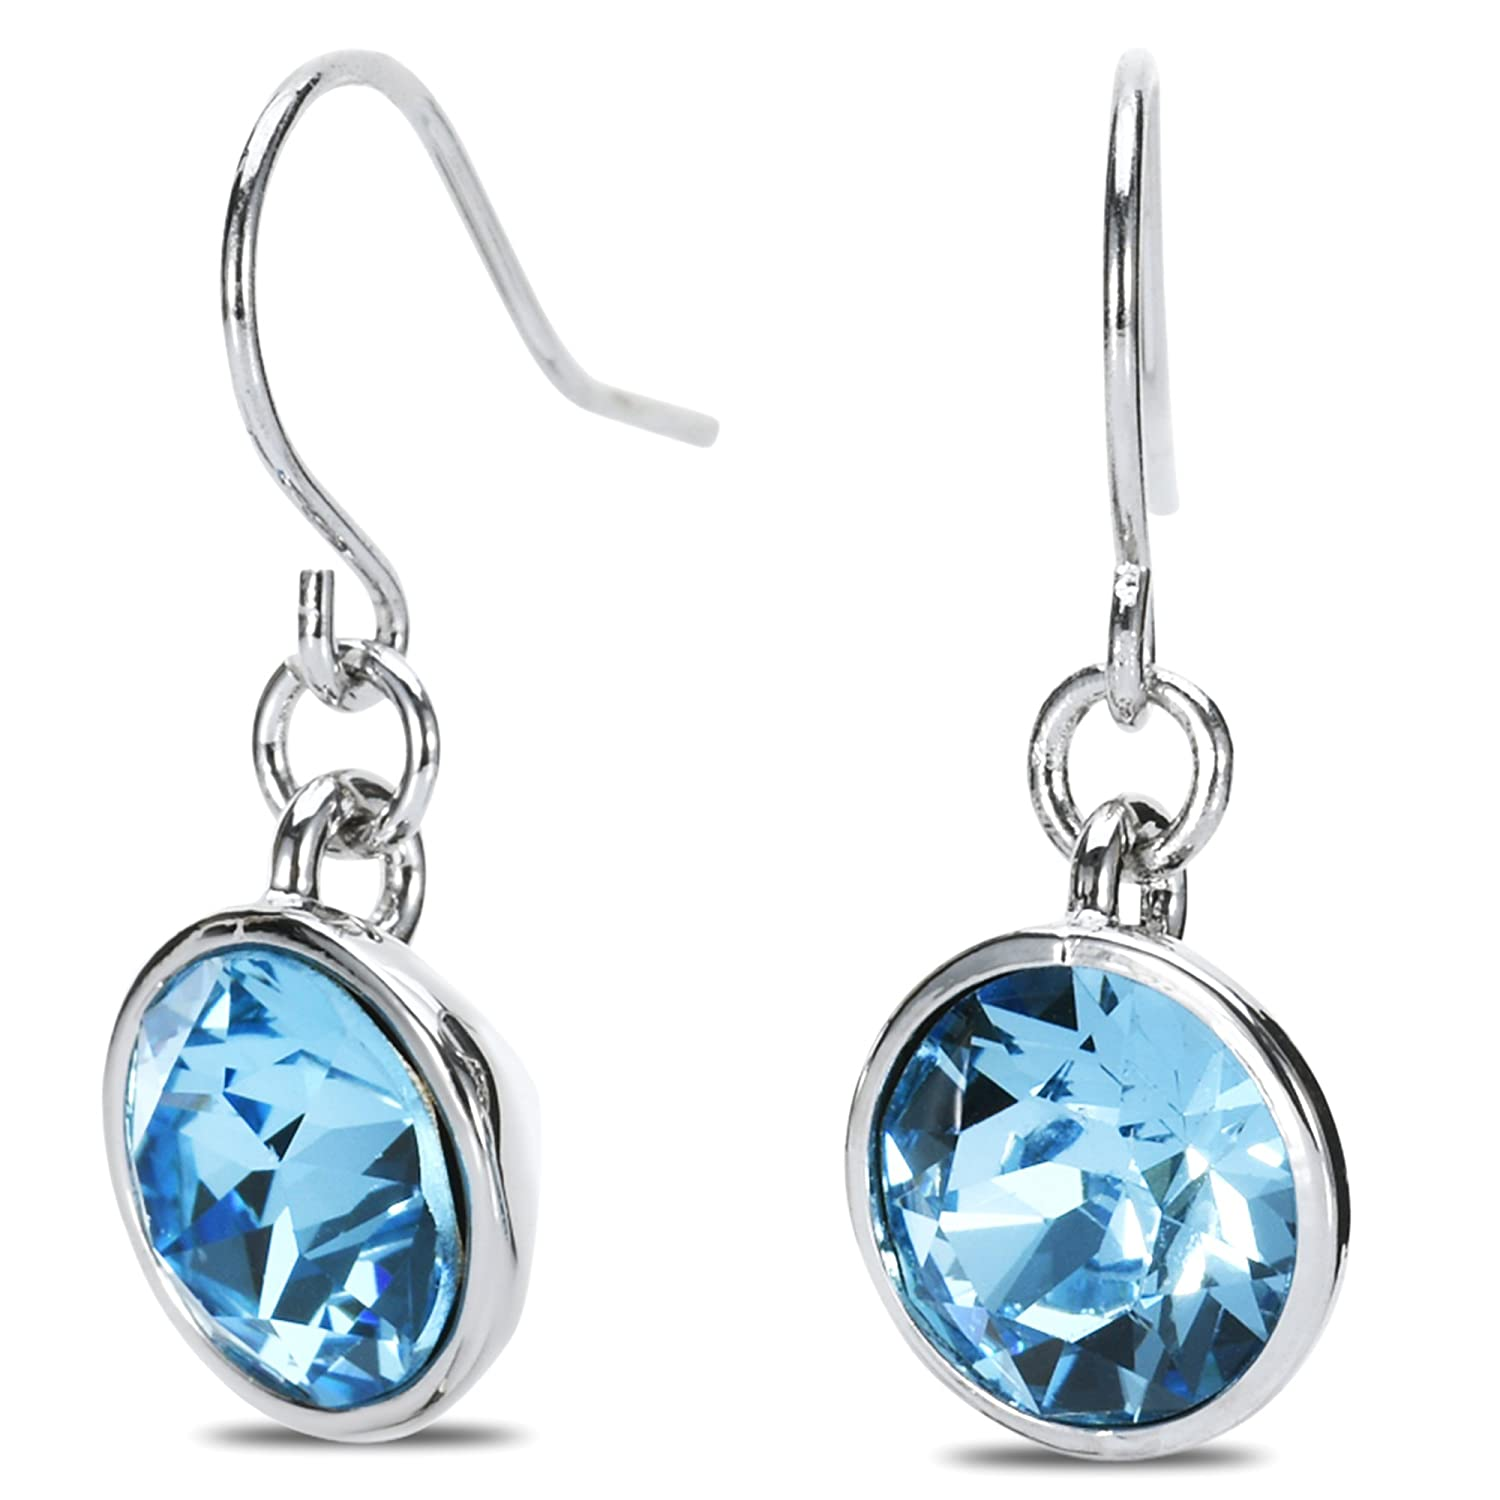 UPSERA Blue Aquamarine Colored Silver-Tone Solitaire Crystal drop dangle hook piercing earrings Hypoallergenic Jewelry set for Women Girls Made with Swarovski Crystals, Perfect for Mother's day Gift